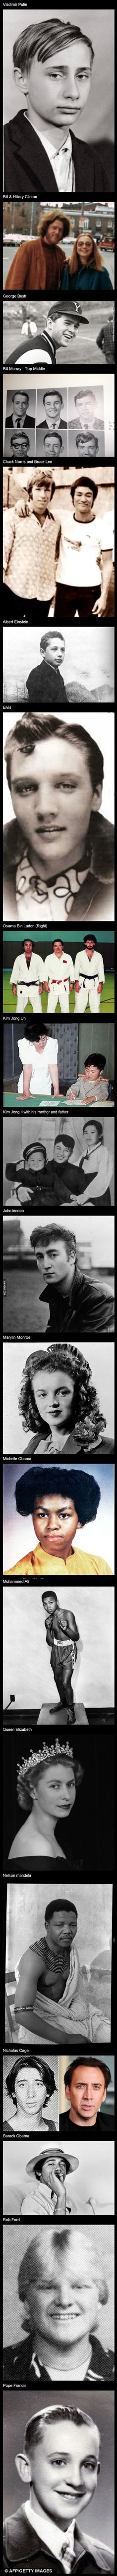 Funny History famous people when they were young. Old Pictures, Best Funny Pictures, Old Photos, Amazing Pictures, Baby Pictures, Demotivational Posters, History Memes, History Facts, Funny History